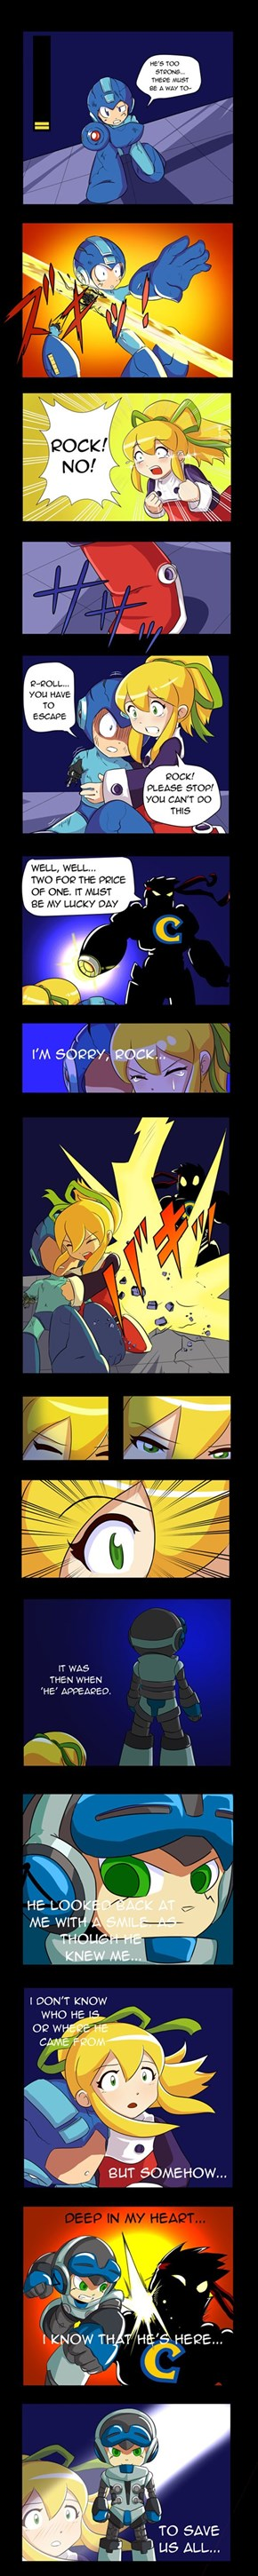 Mighty No. 9 Save Us All